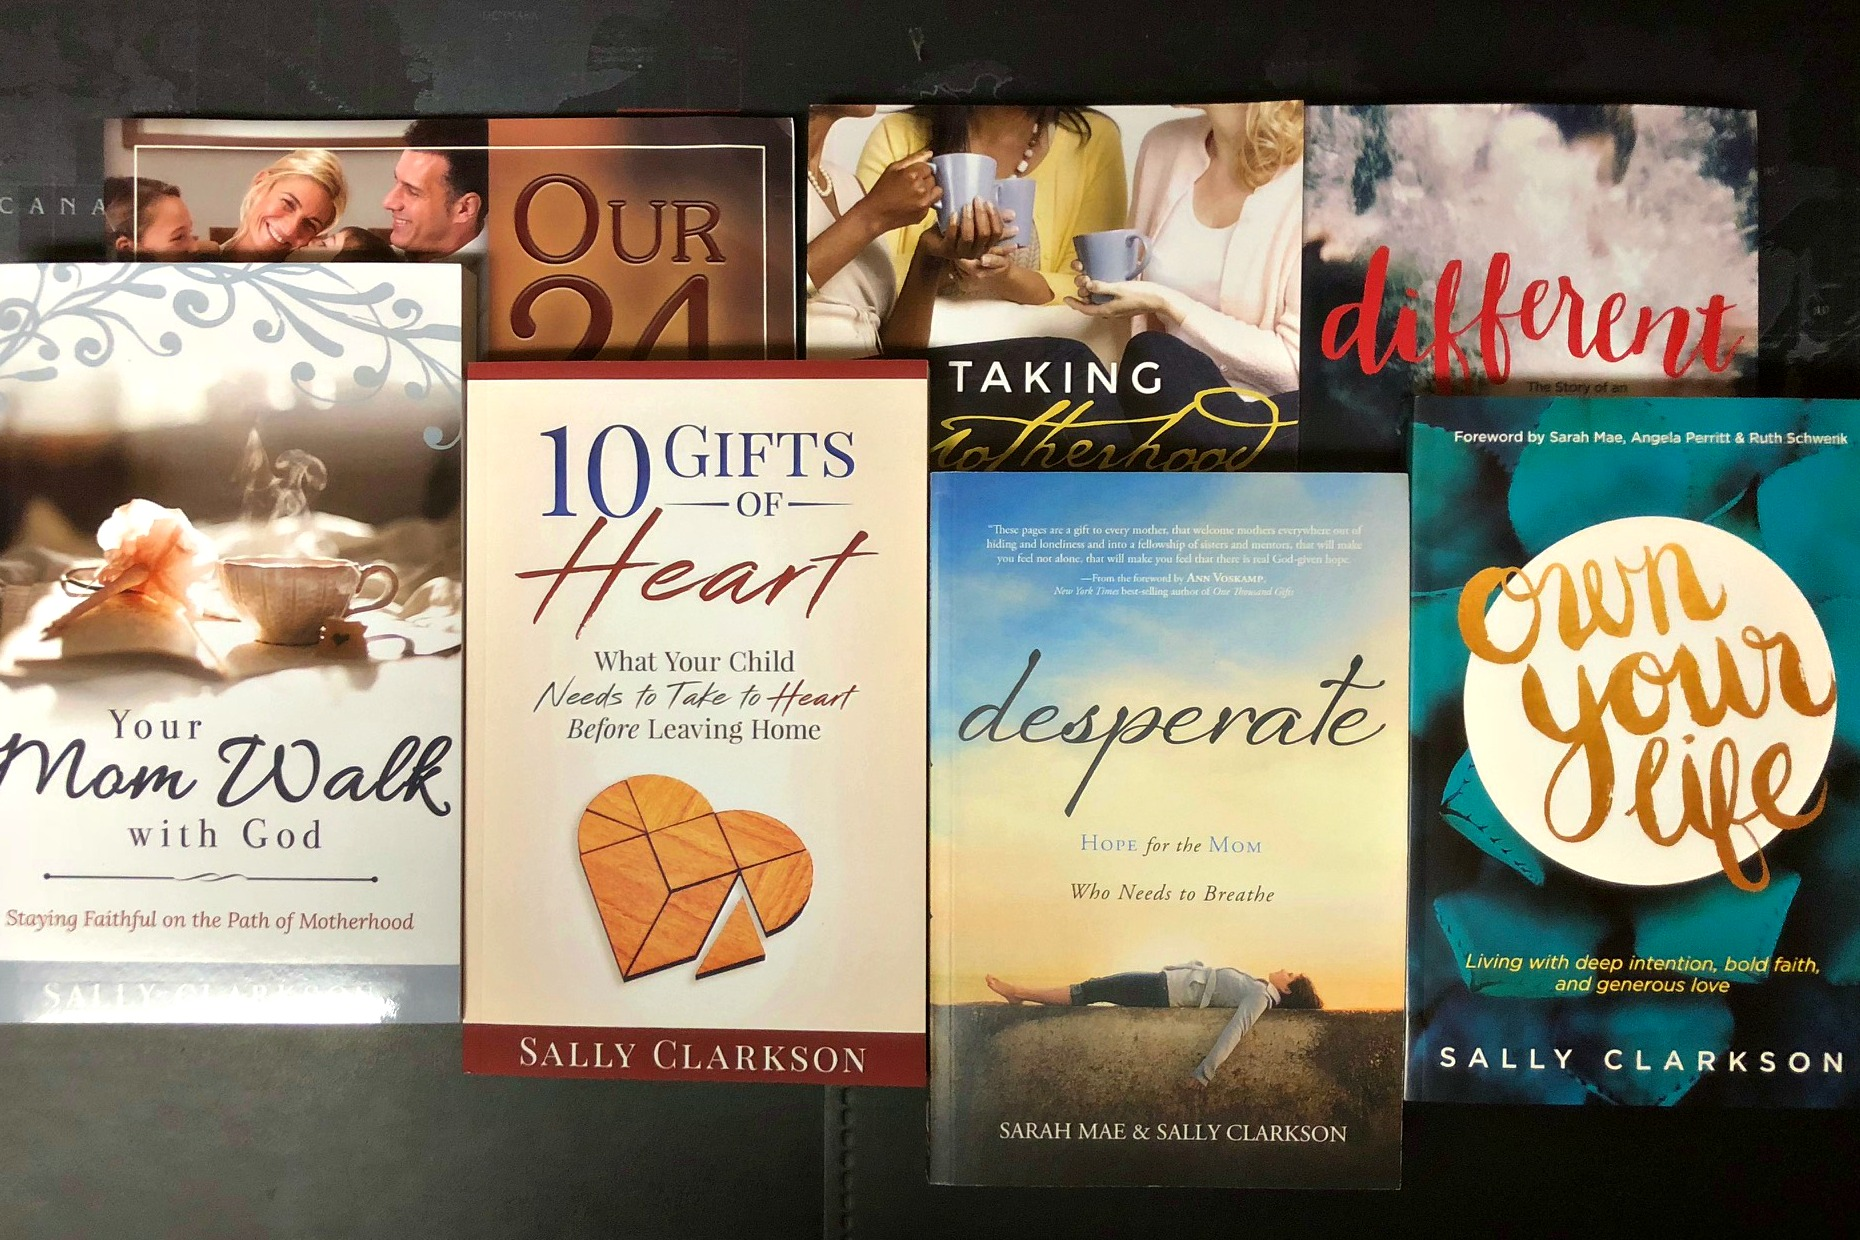 Sally book talks - Select from a growing list of special series by Sally about her books such as 10 Gifts of Heart, Own Your Life, and others planned. Only here.